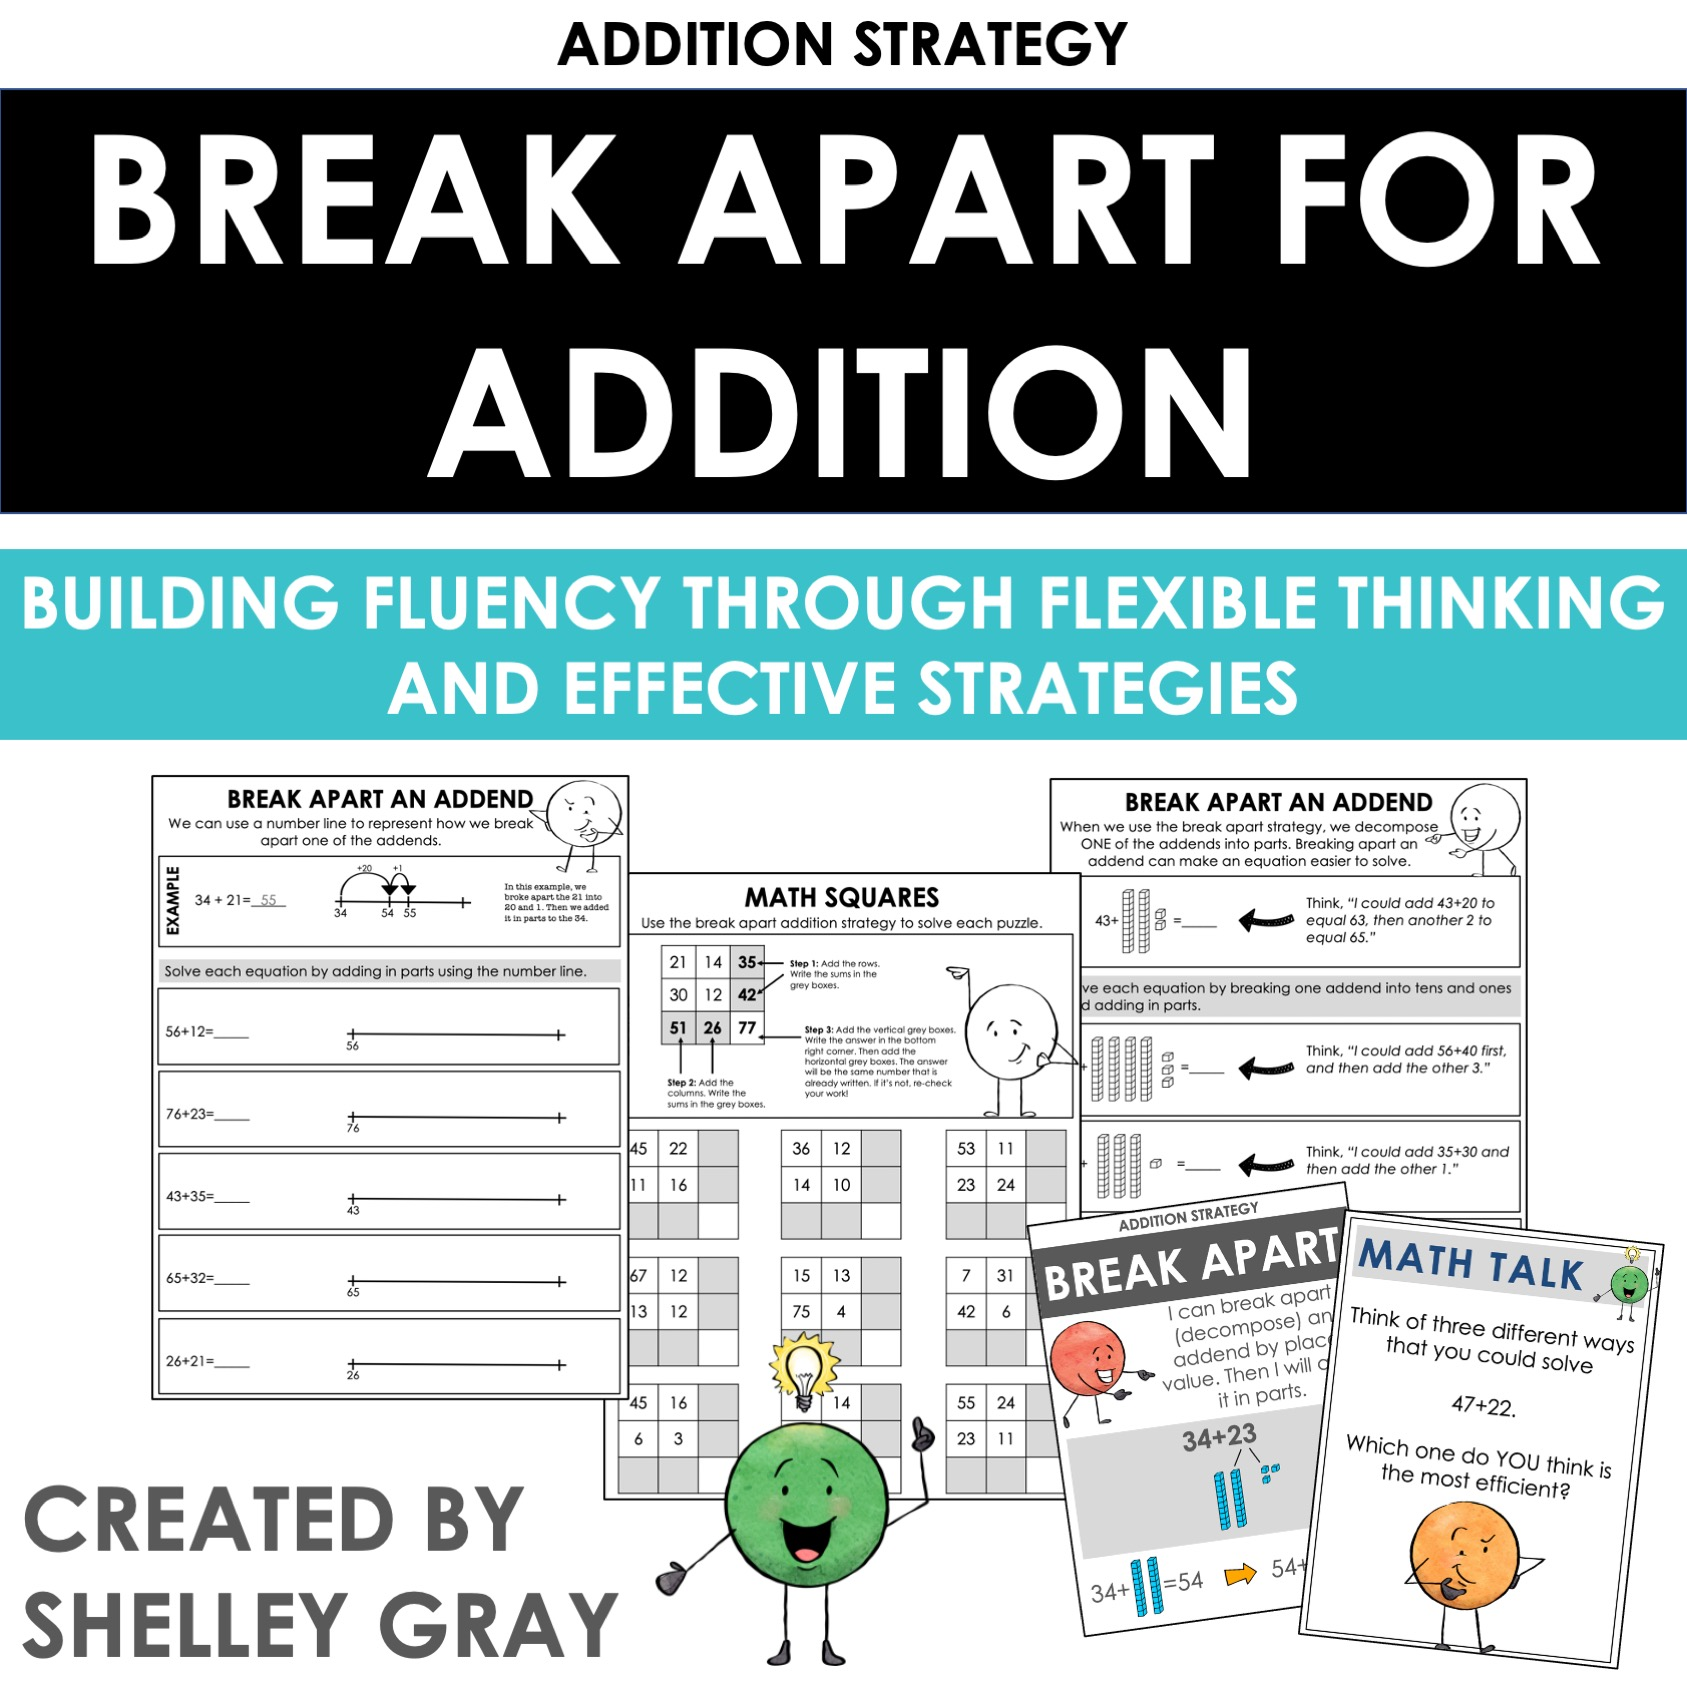 Breaking Apart An Addend An Addition Strategy